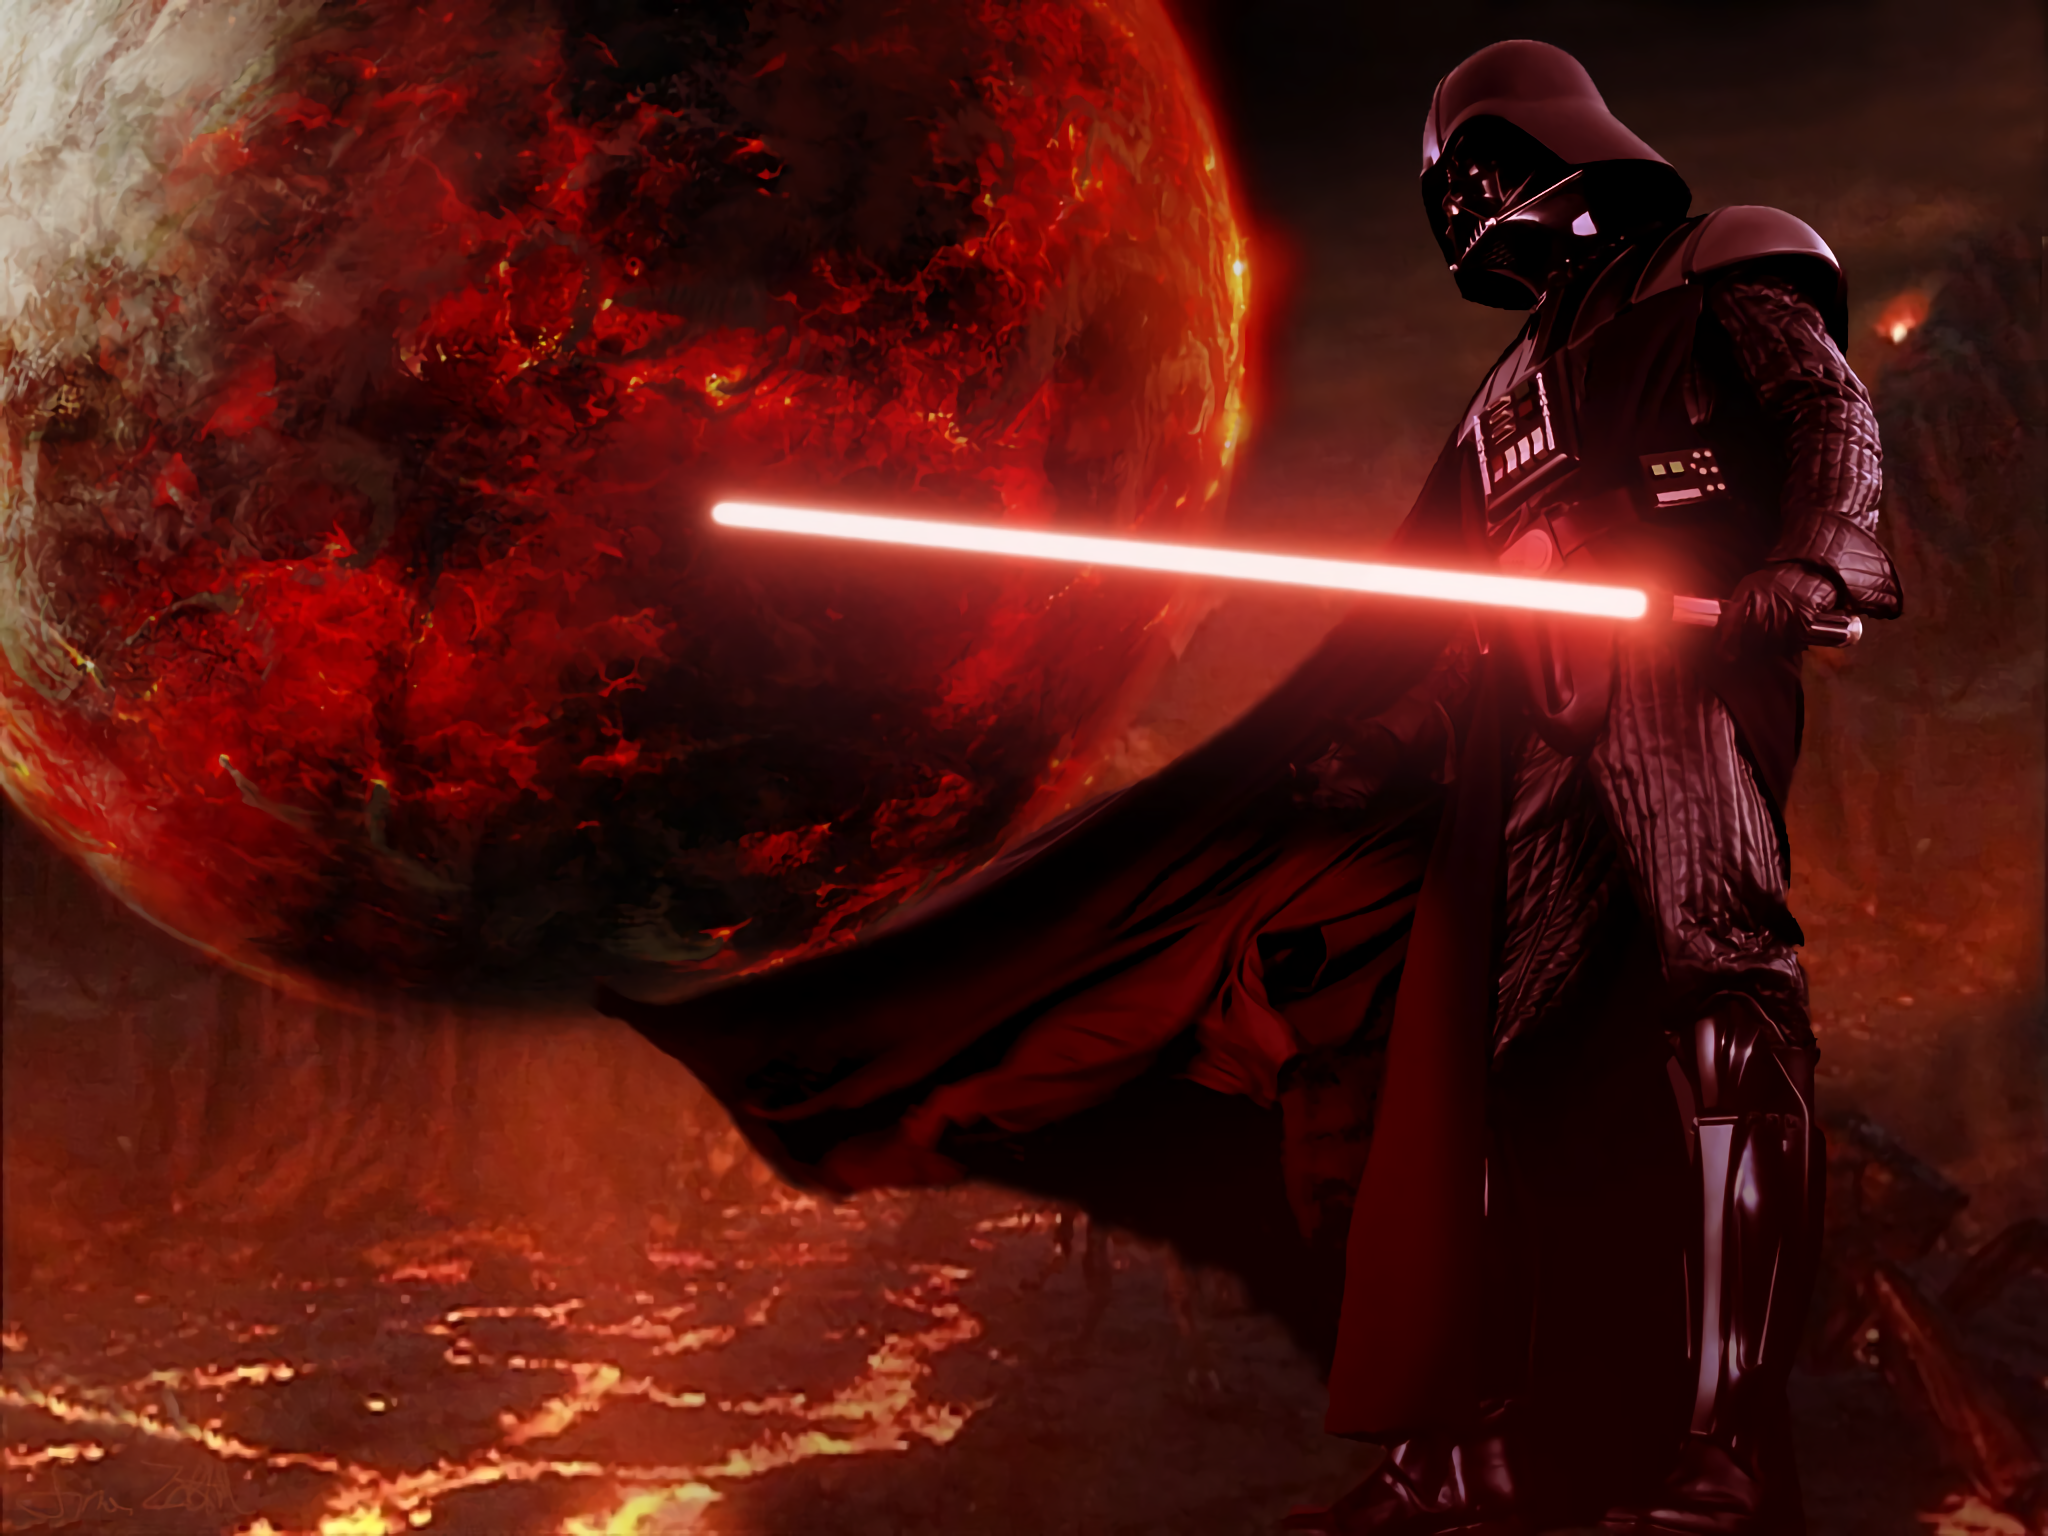 622 star wars hd wallpapers | background images - wallpaper abyss